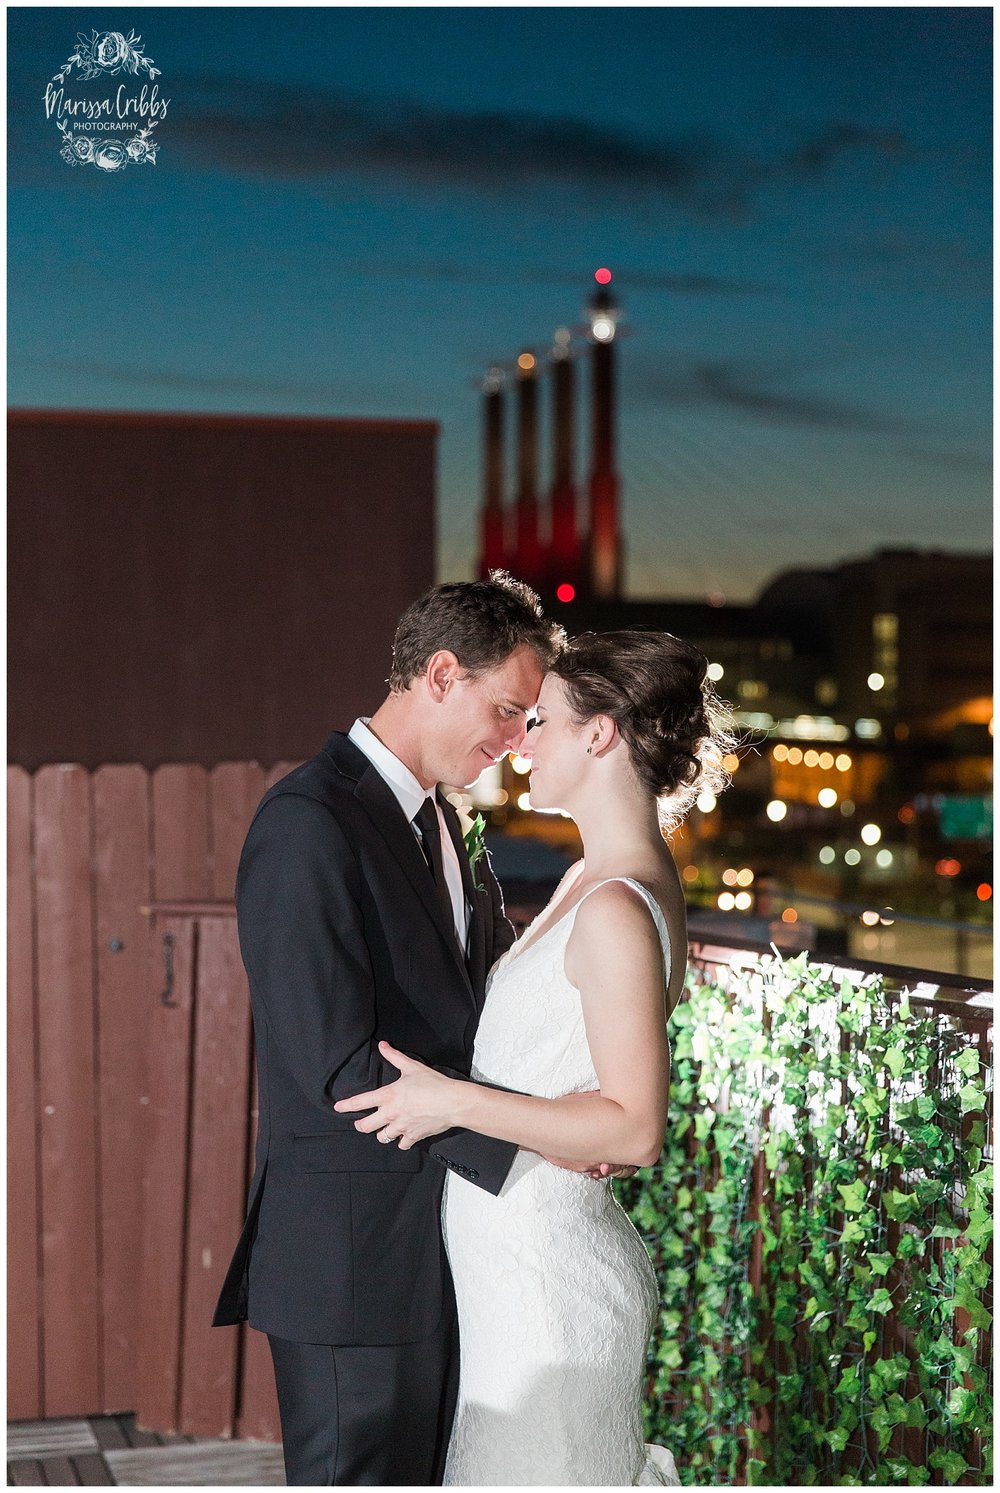 TERRACE ON GRAND WEDDING | MEGHAN & DAVYD | MARISSA CRIBBS PHOTOGRAPHY | CELEEBRATIONS OF LOVE_3006.jpg